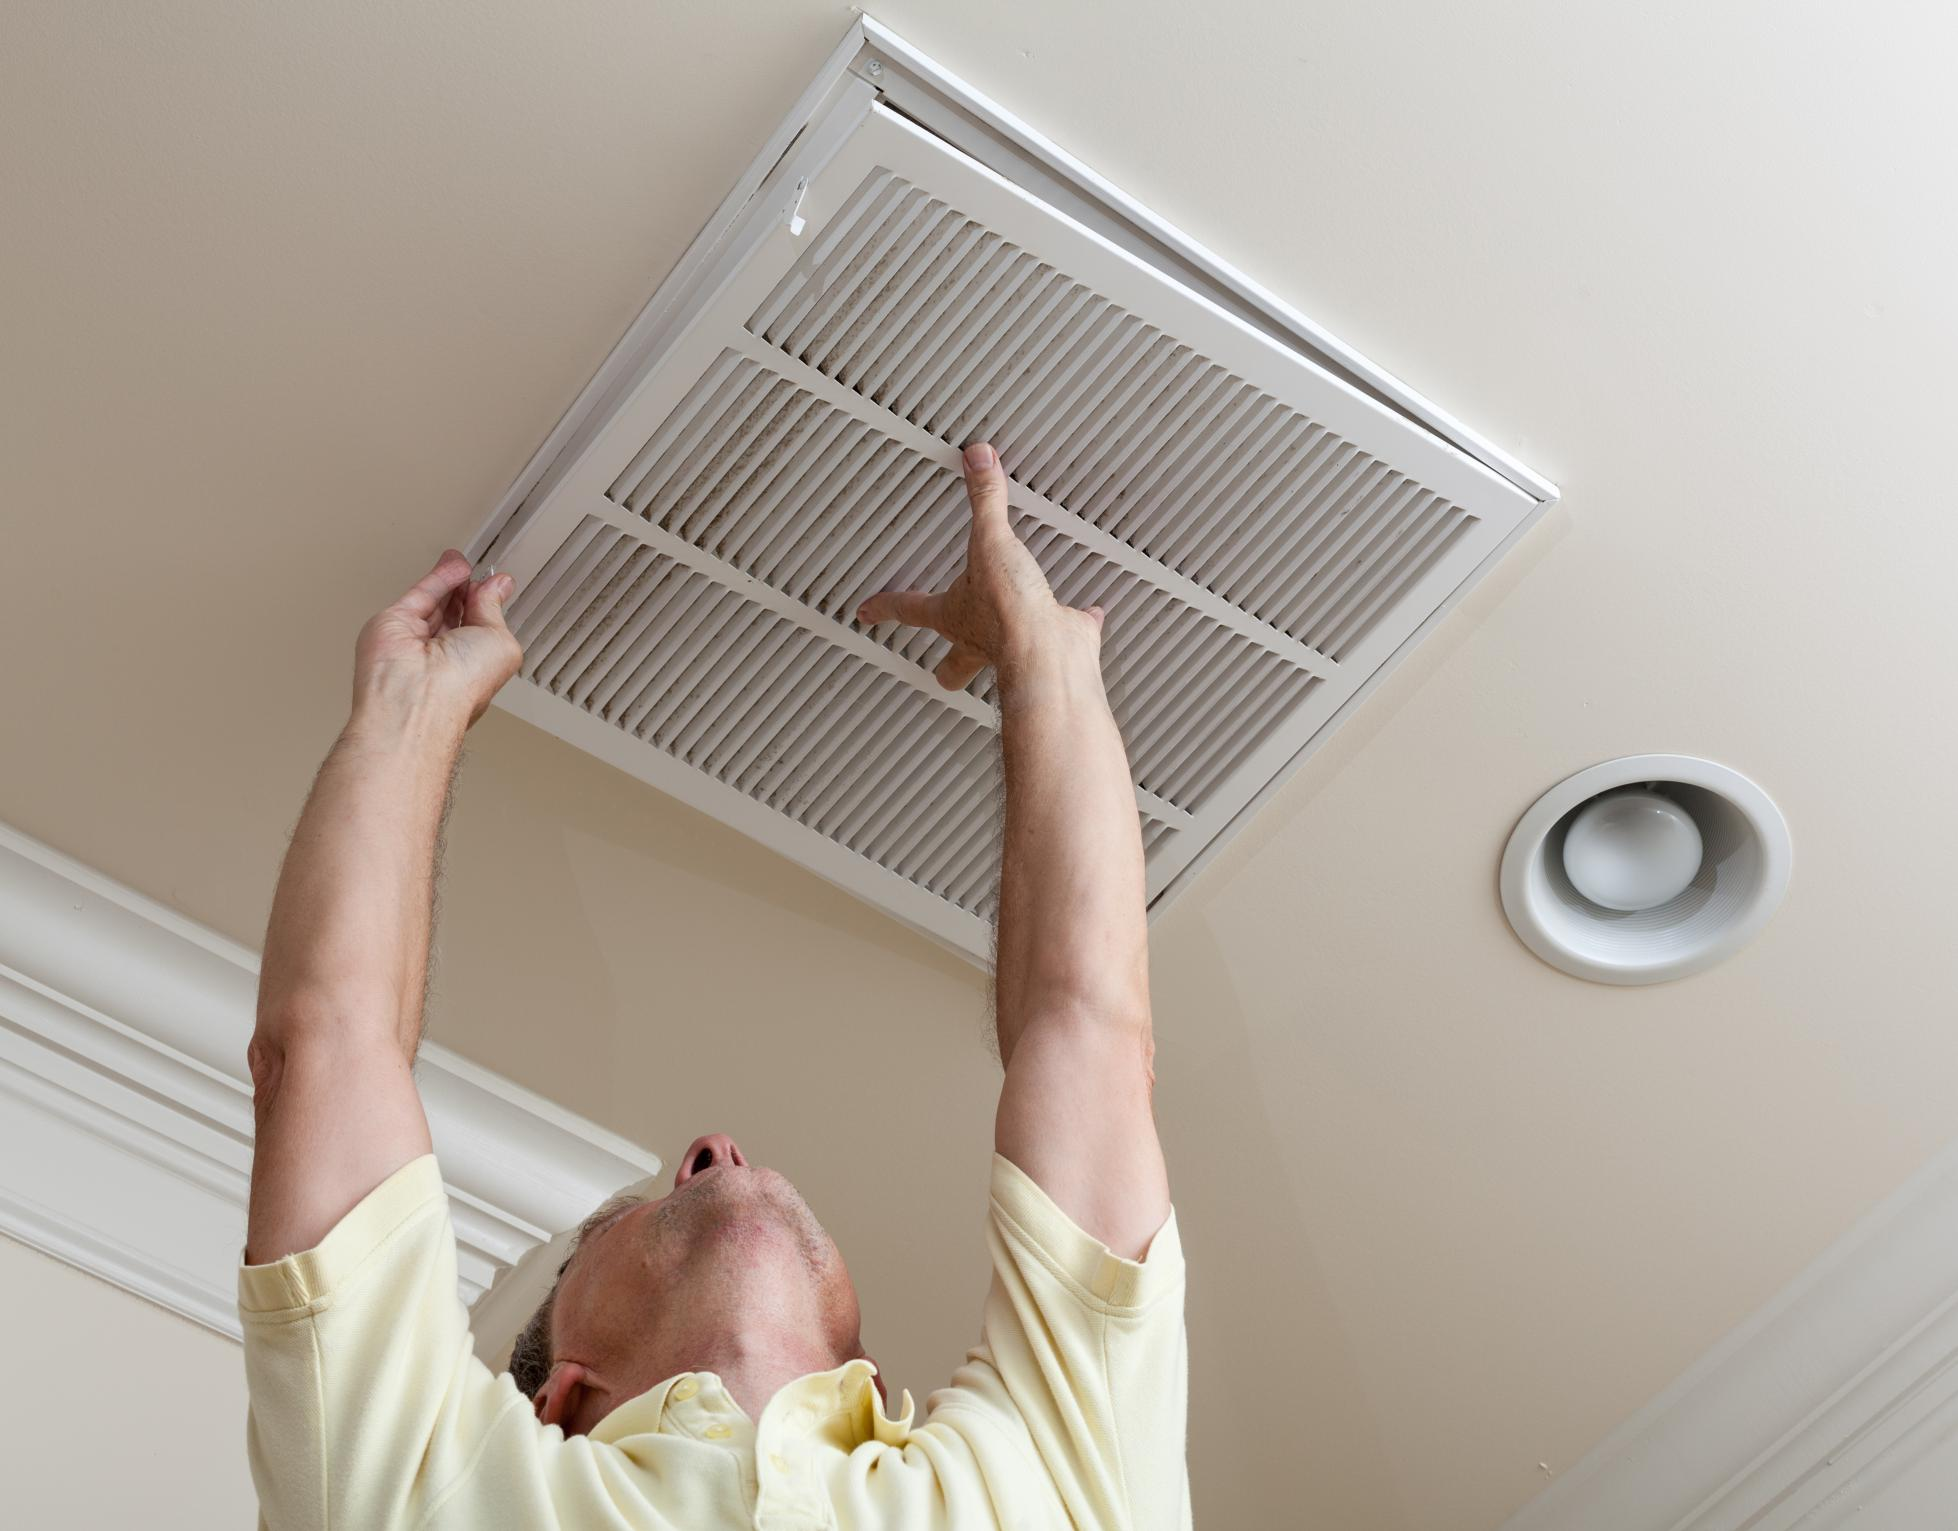 air conditioning filter in ceiling - Air Filter Home